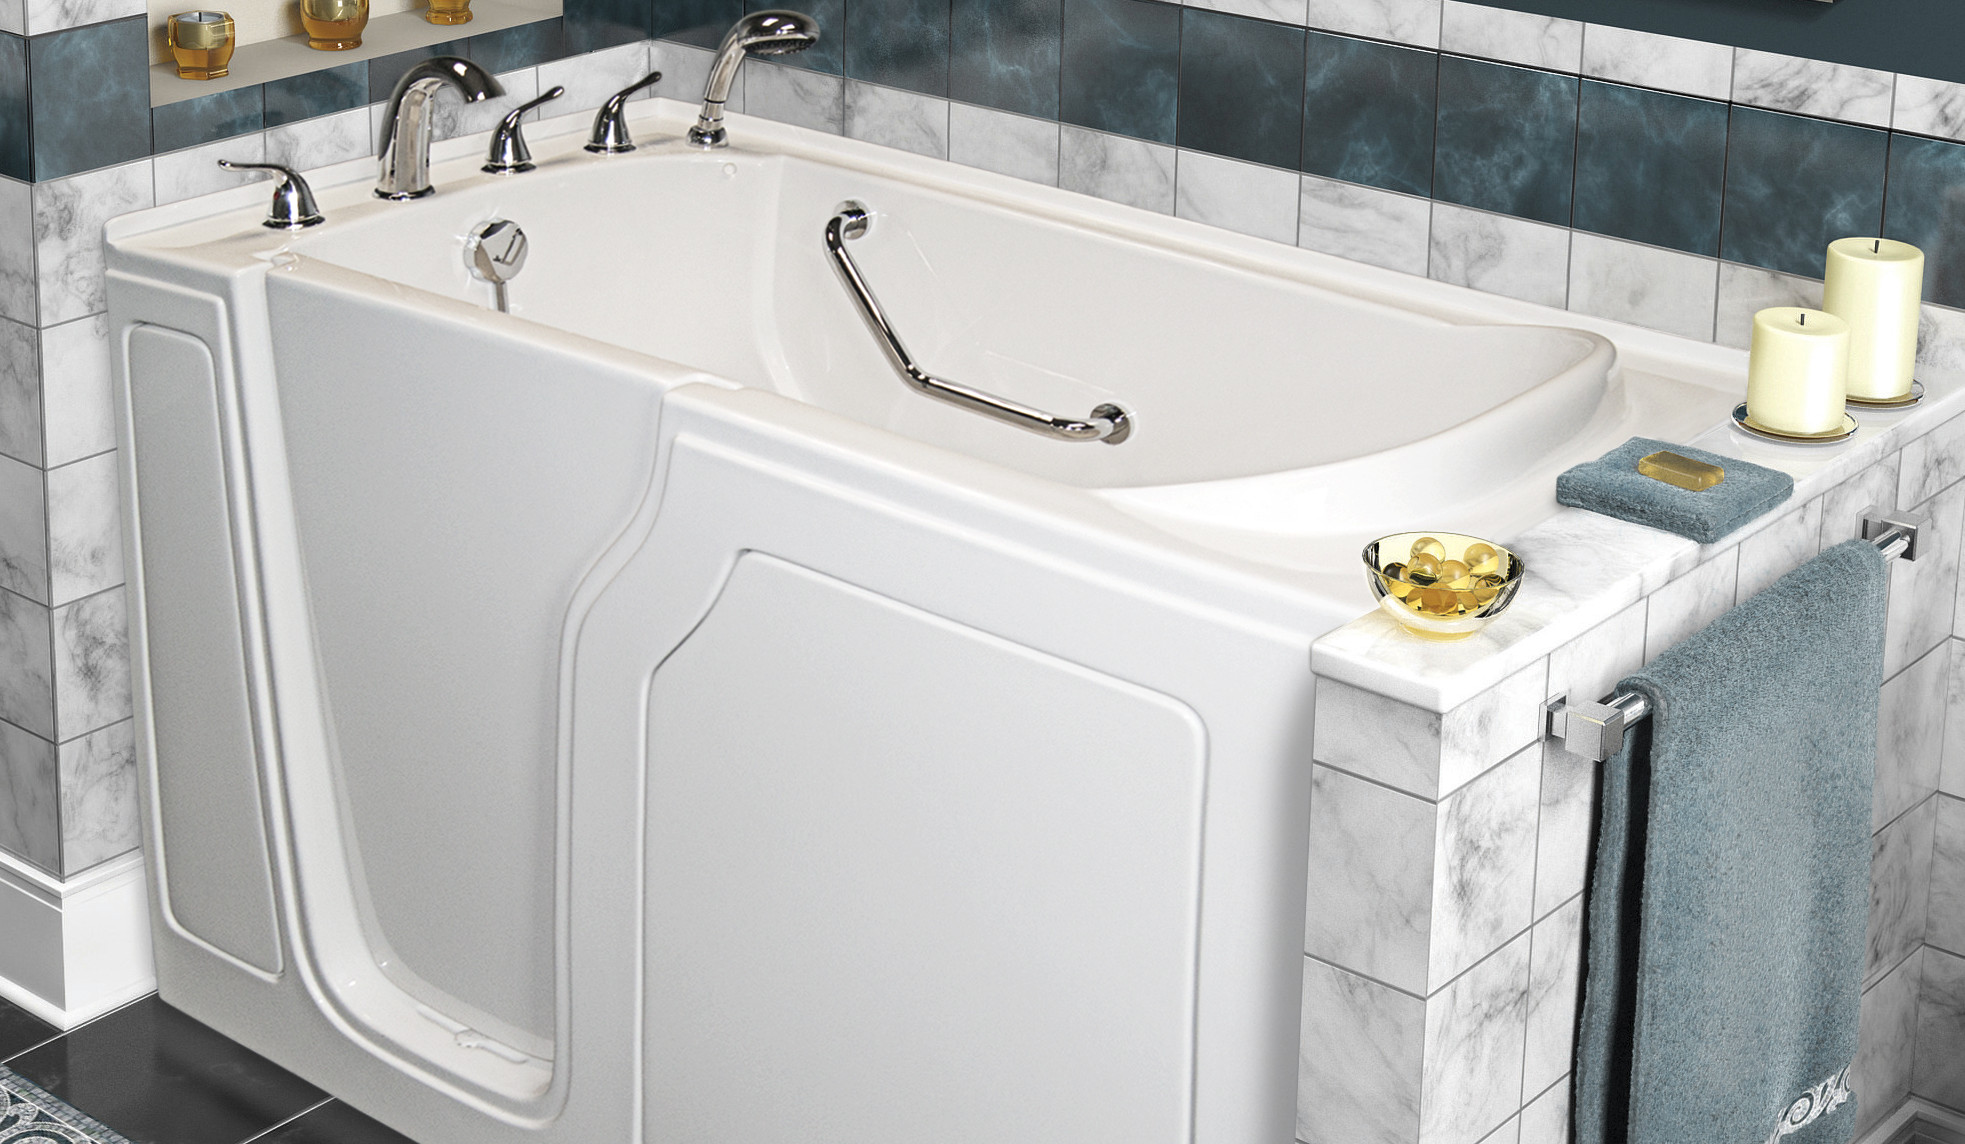 Best Bathroom Remodel Company In The Mansfield Ohio Area - Bathroom remodeling mansfield oh